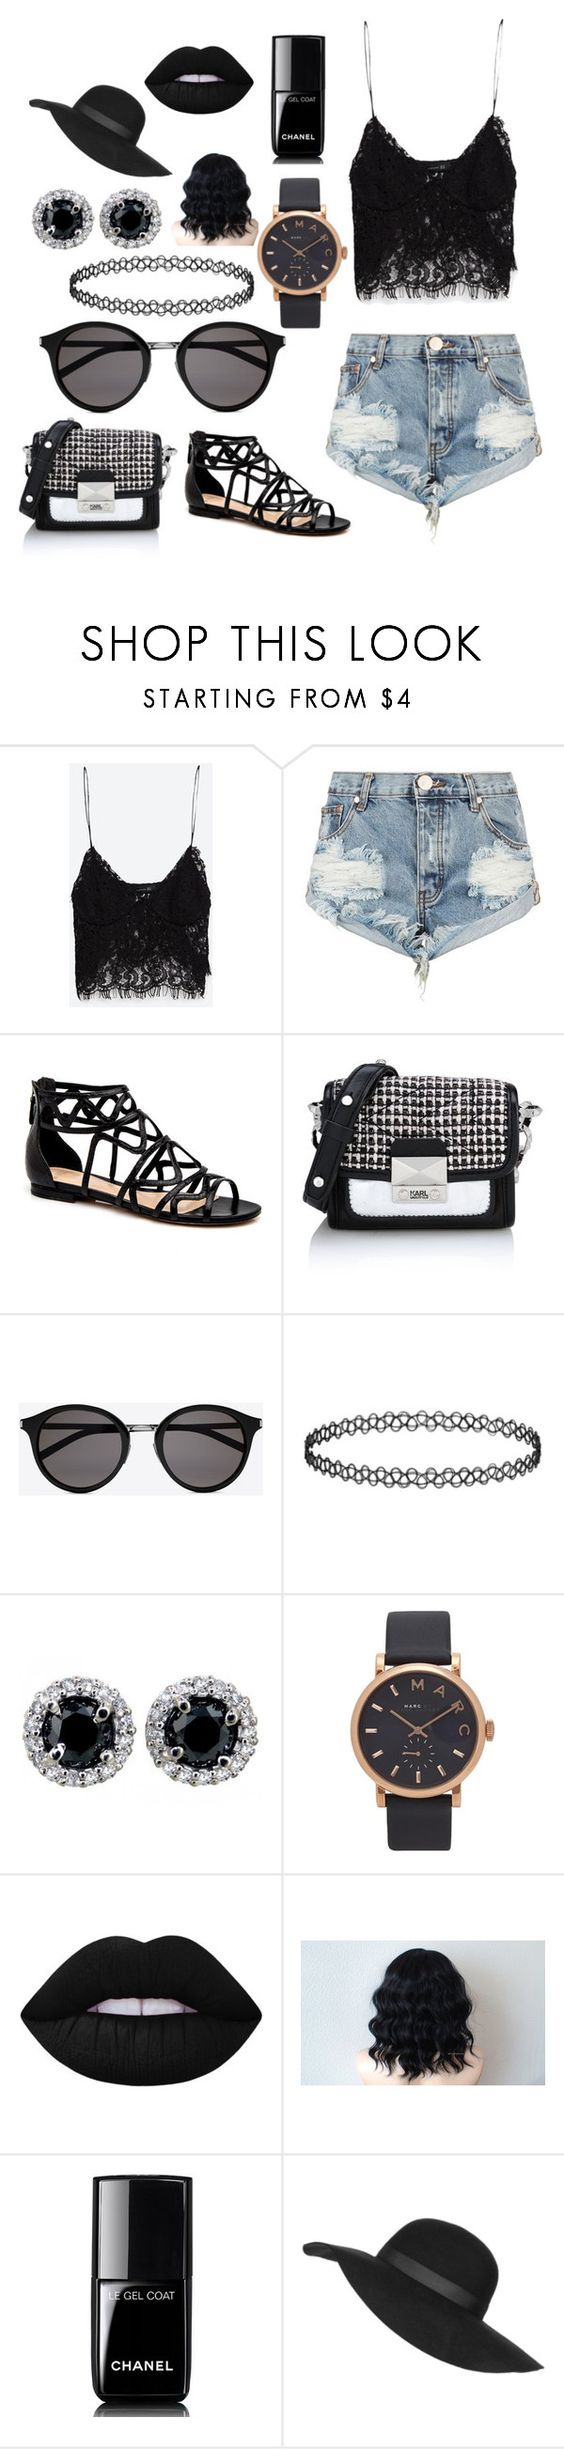 """""""black summer"""" by edgarallenhoe ❤ liked on Polyvore featuring Zara, One Teaspoon, Karl Lagerfeld, Yves Saint Laurent, Marc by Marc Jacobs, Lime Crime, Chanel and Topshop"""